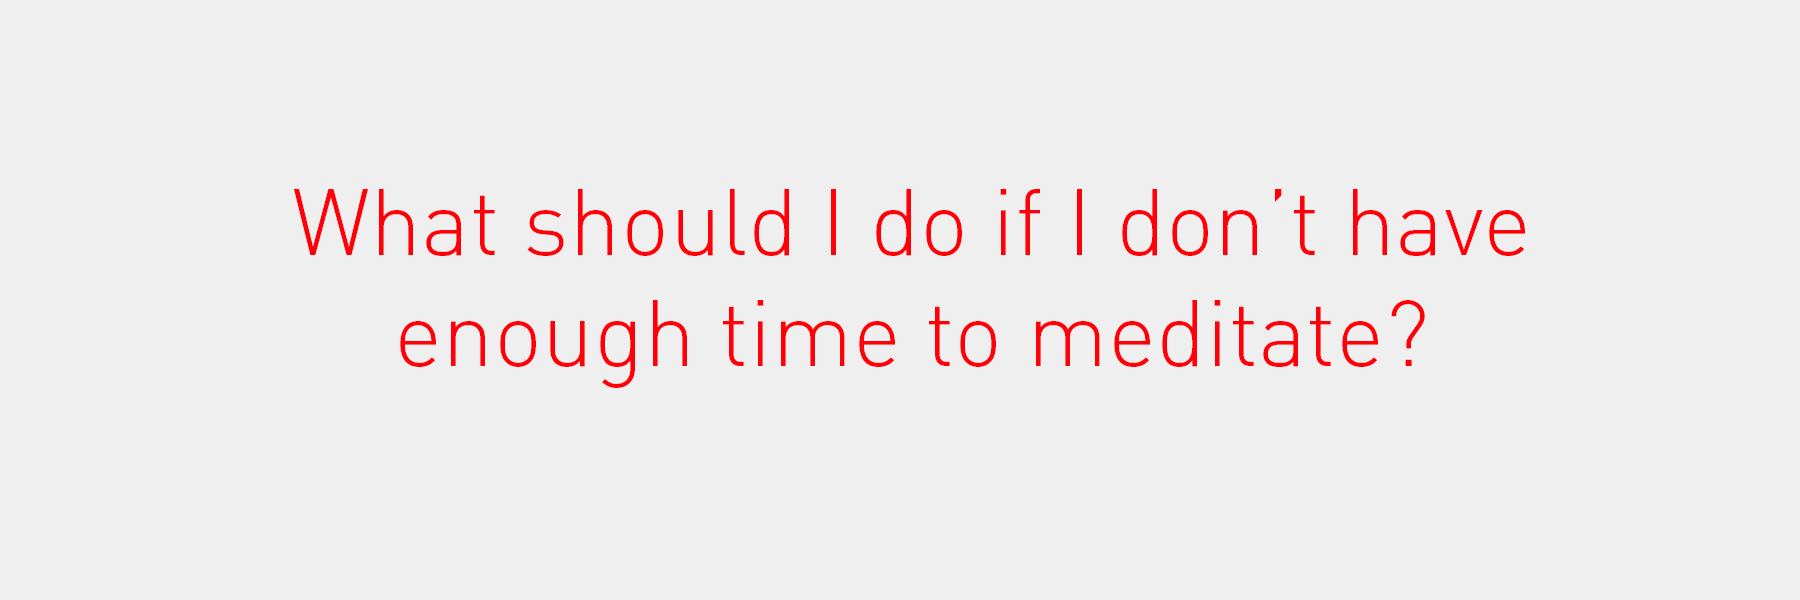 What should I do if I don't have enough time to meditate?